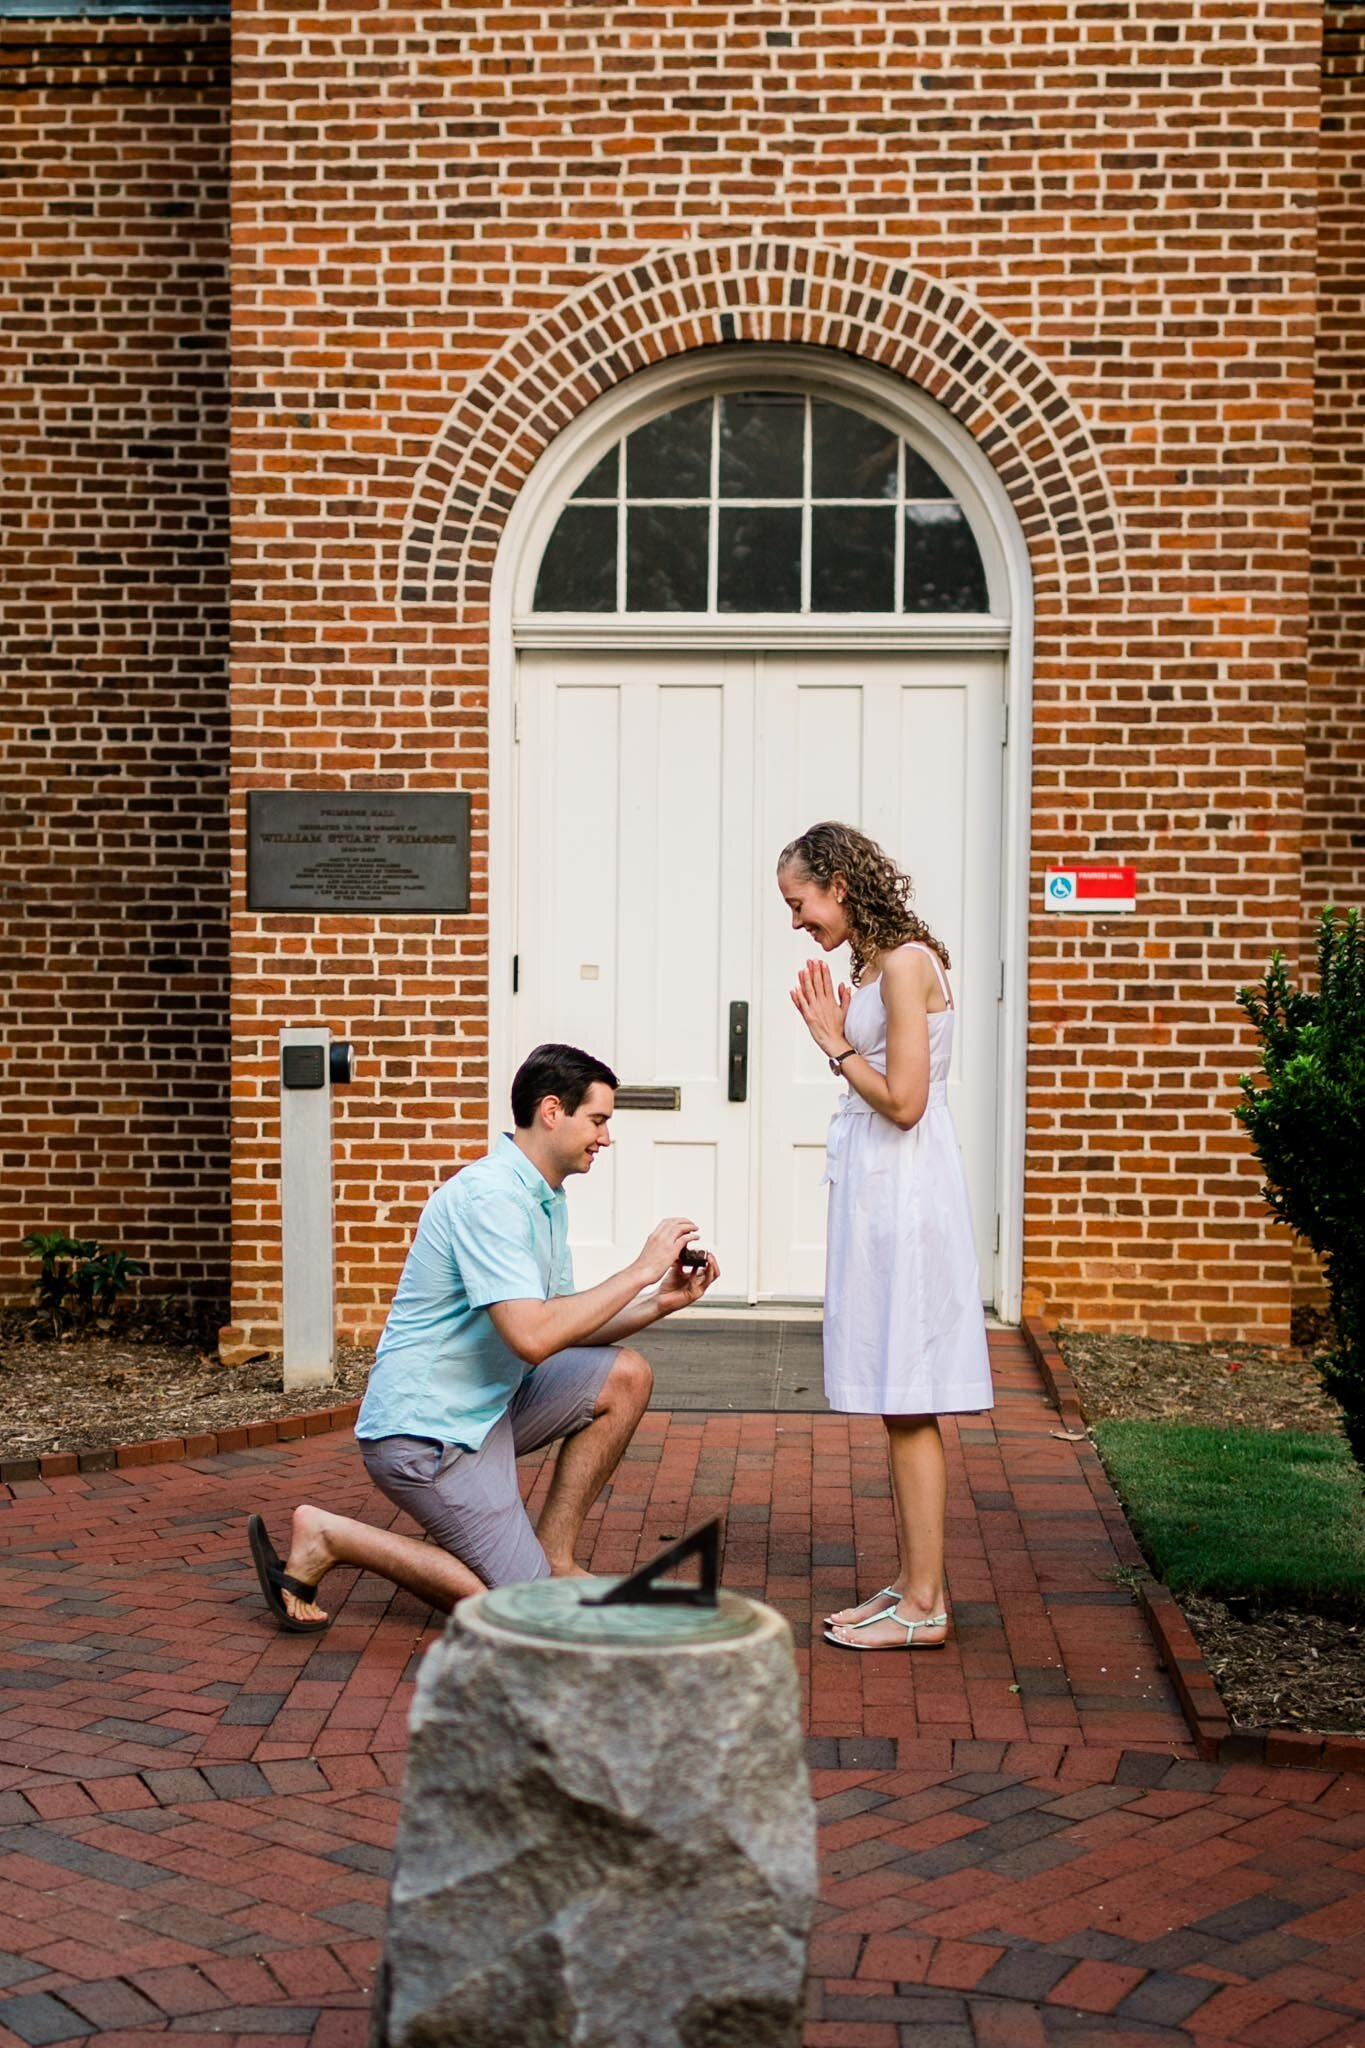 Raleigh Engagement Photographer | NC State University | By G. Lin Photography | Man proposing to woman